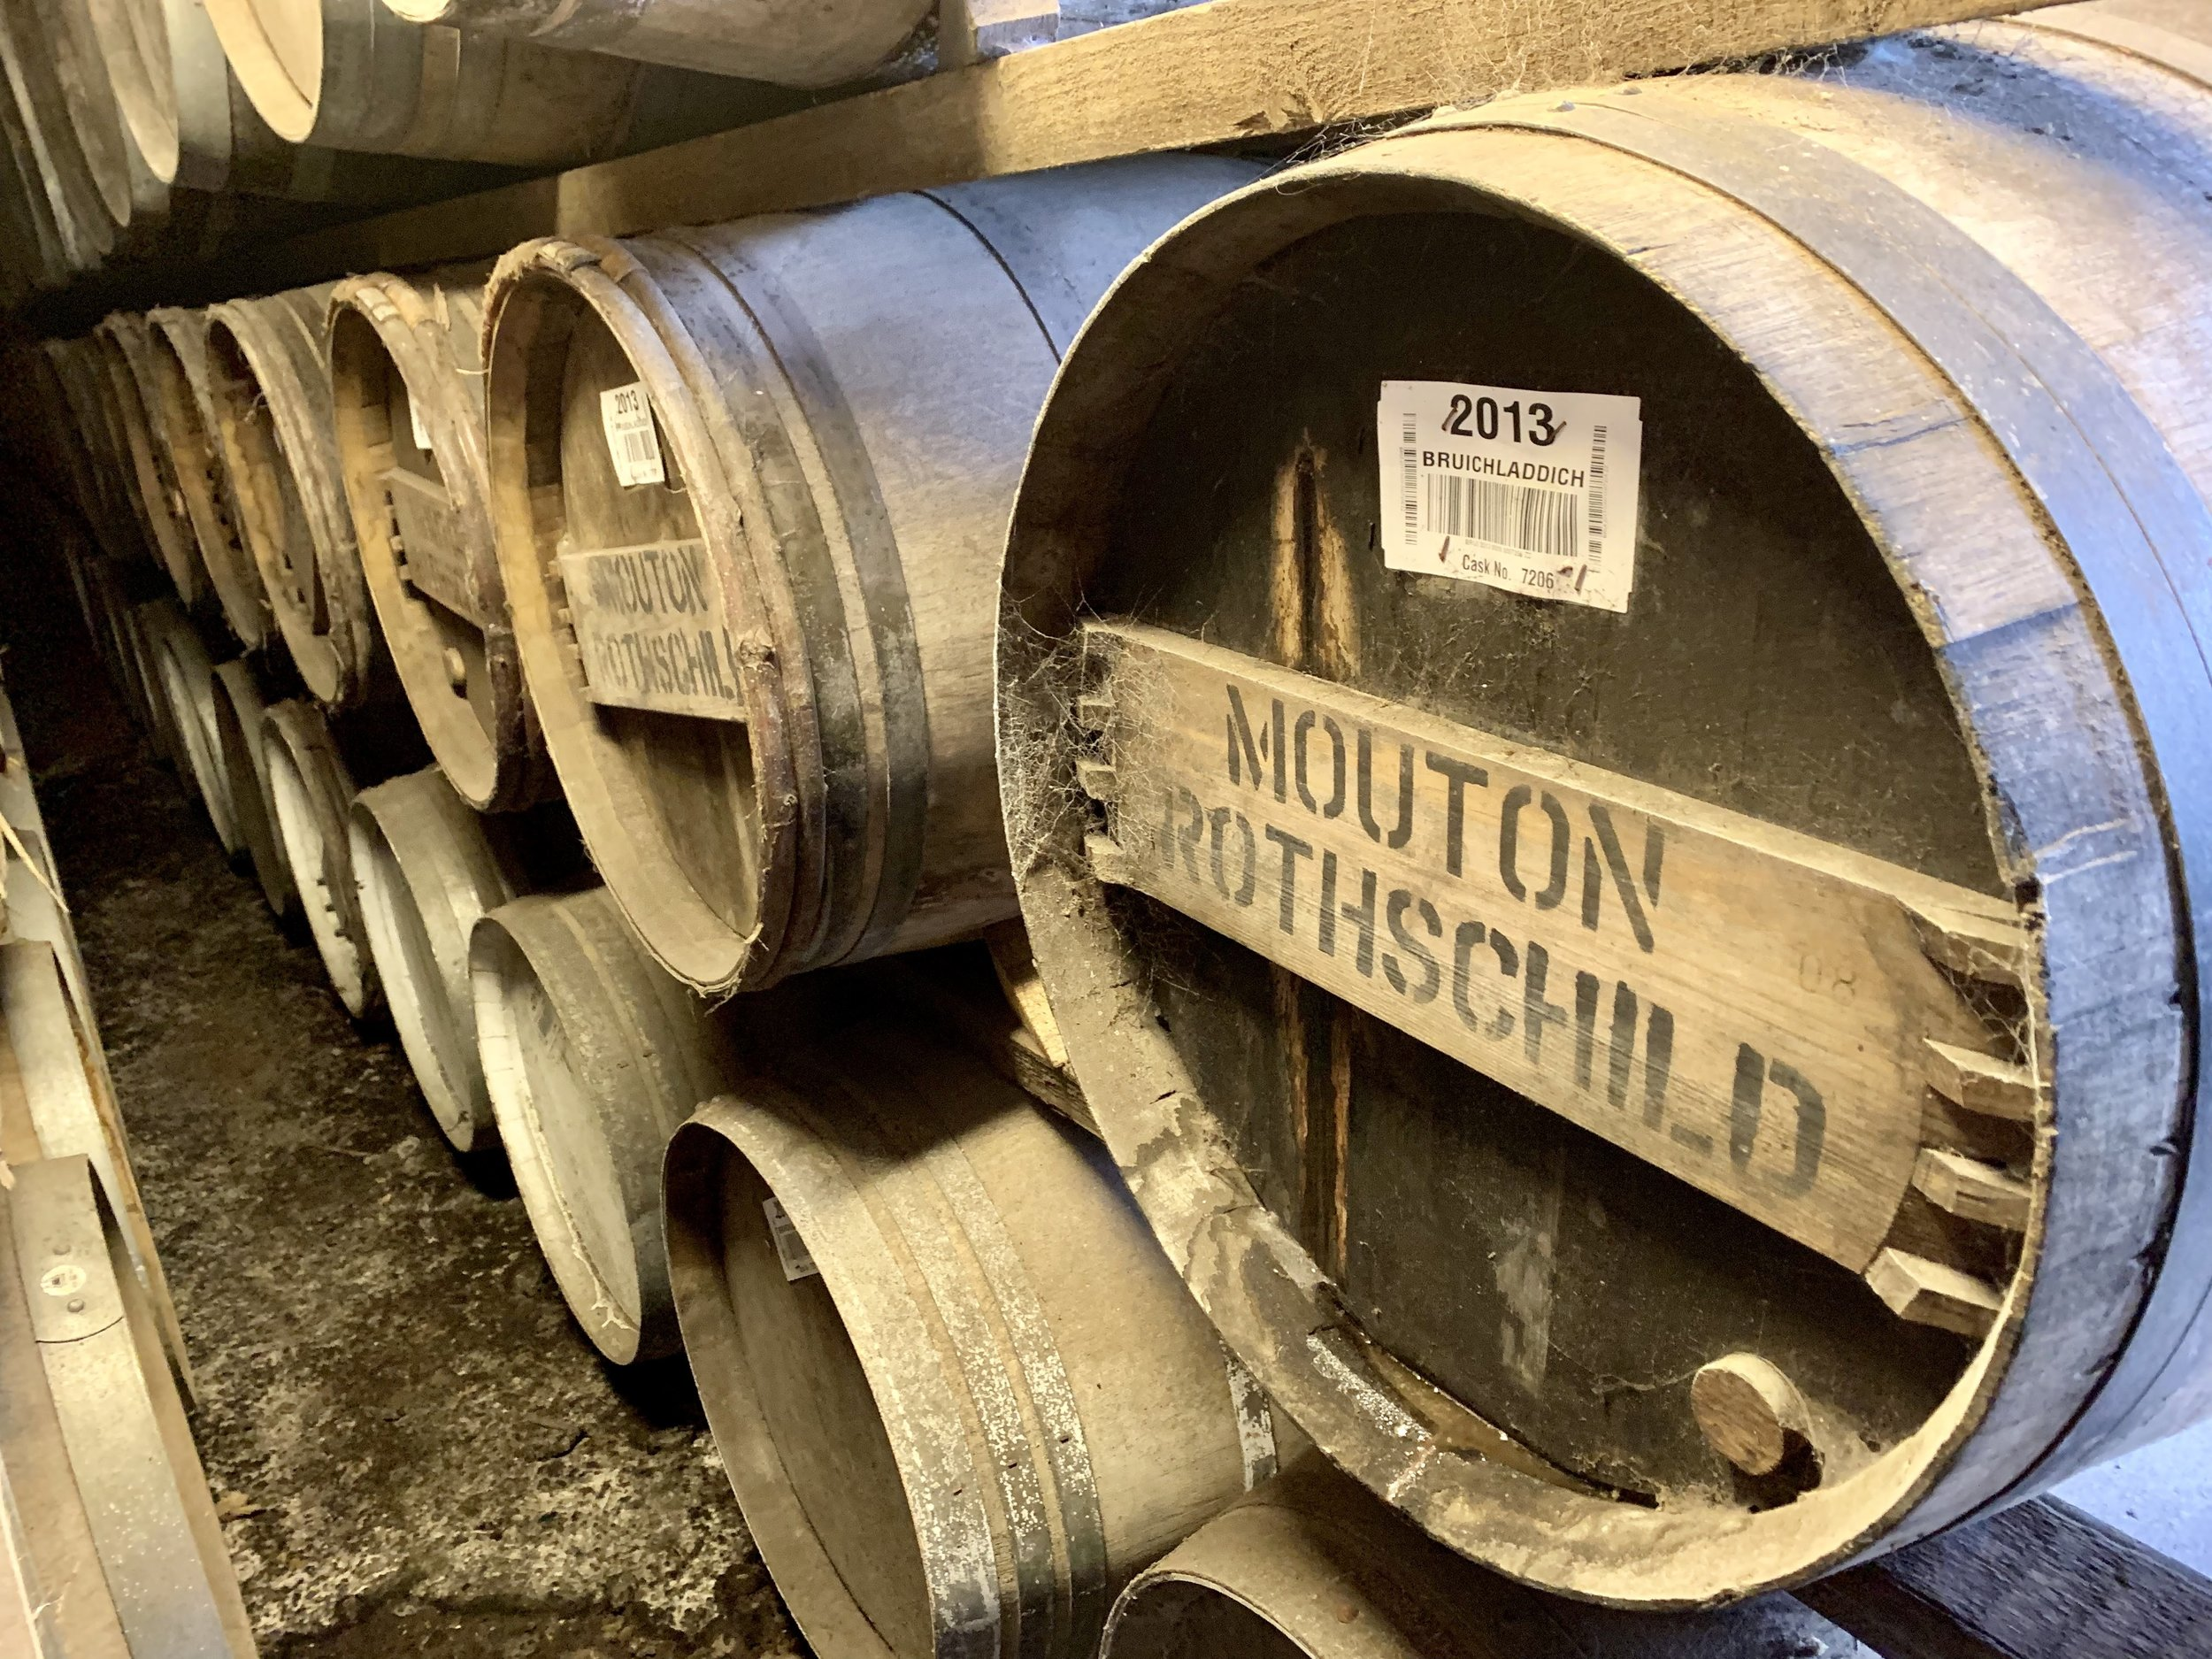 The aging warehouse at Bruichladdich